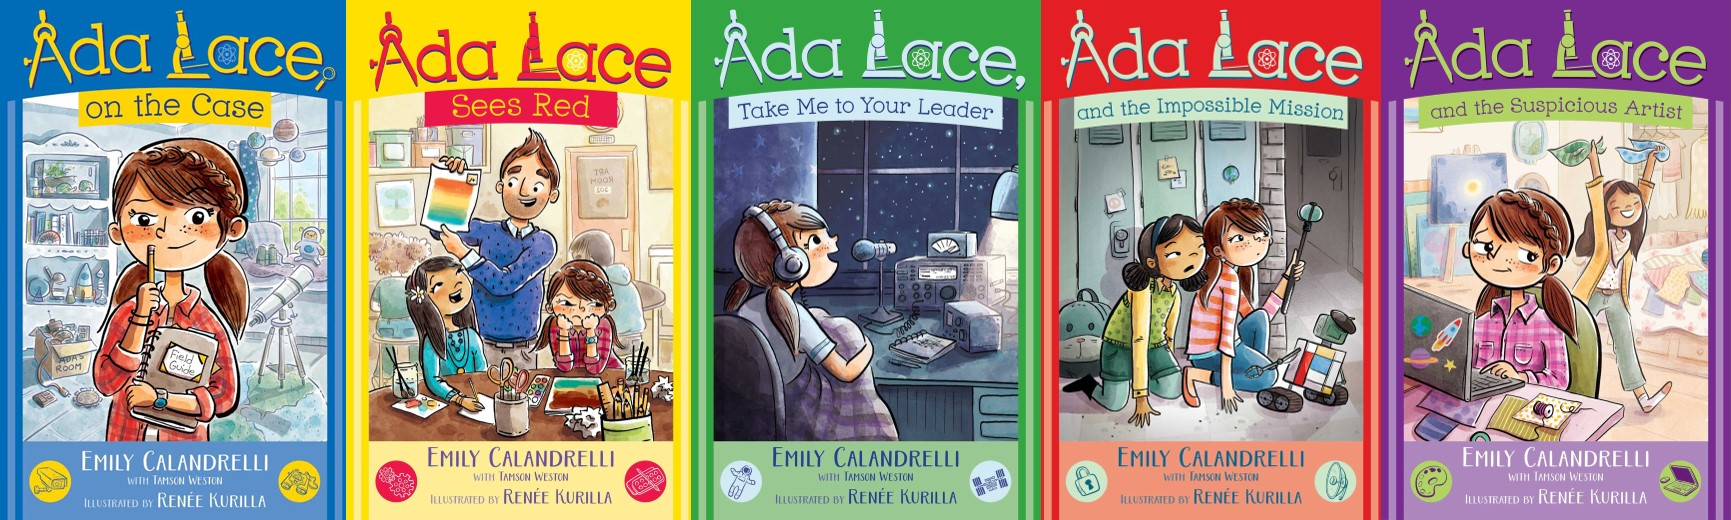 Ada Lace 5 Books.png.jpg